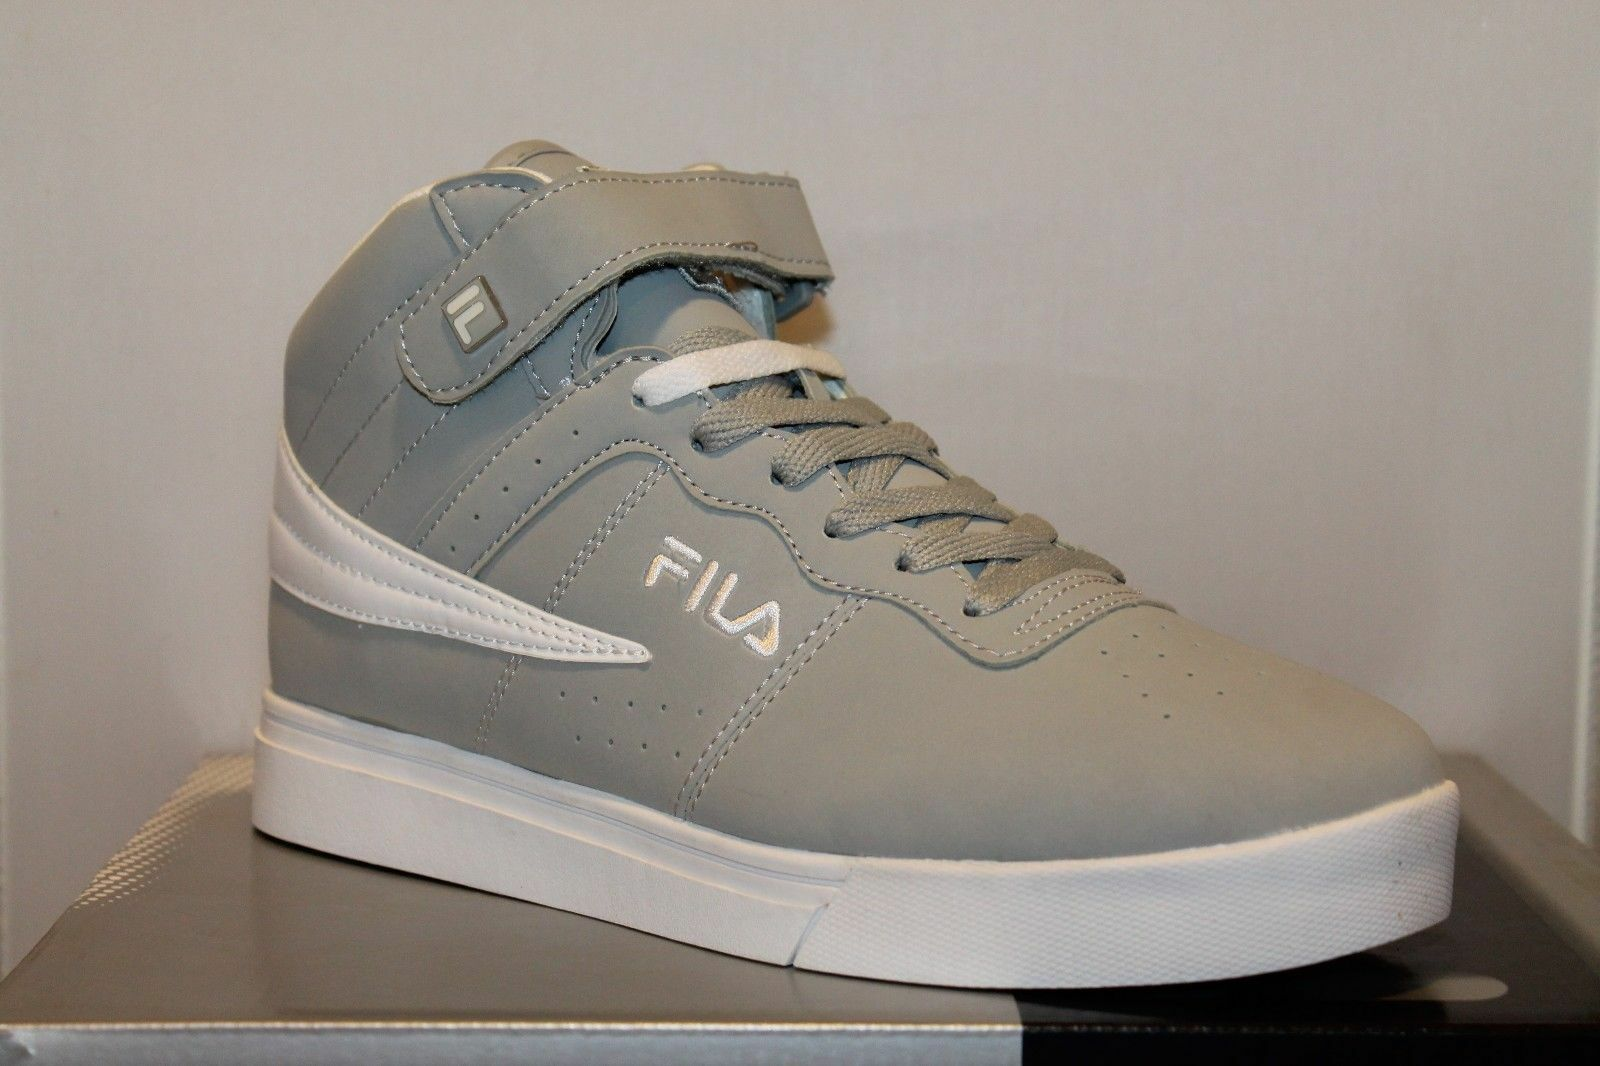 Homme Fila SHOR Vulc13 Suede Leather Mid High Top Sneakers Gris/Blanc US Taille 8.5